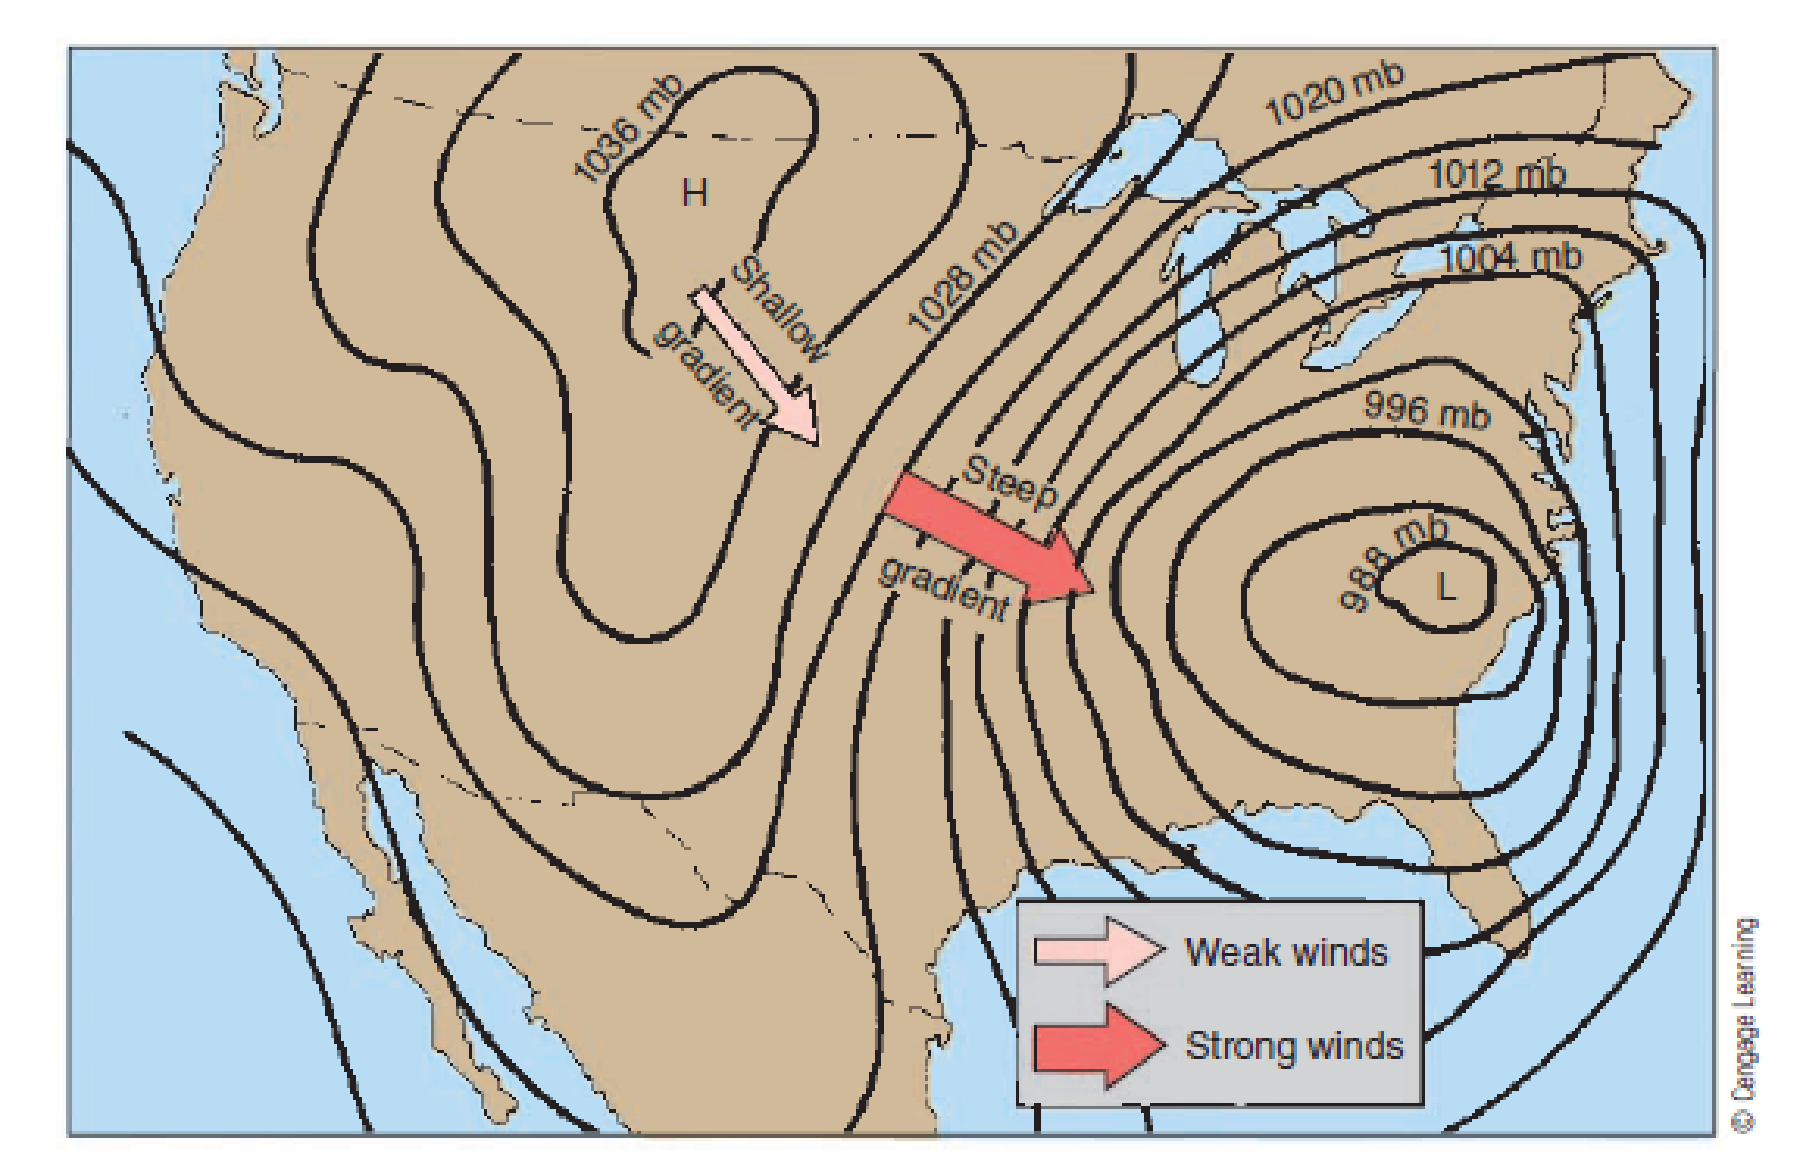 Chapter 4, Problem 5FQ, Where else on this figure (other than the area indicated) would there be strong winds?